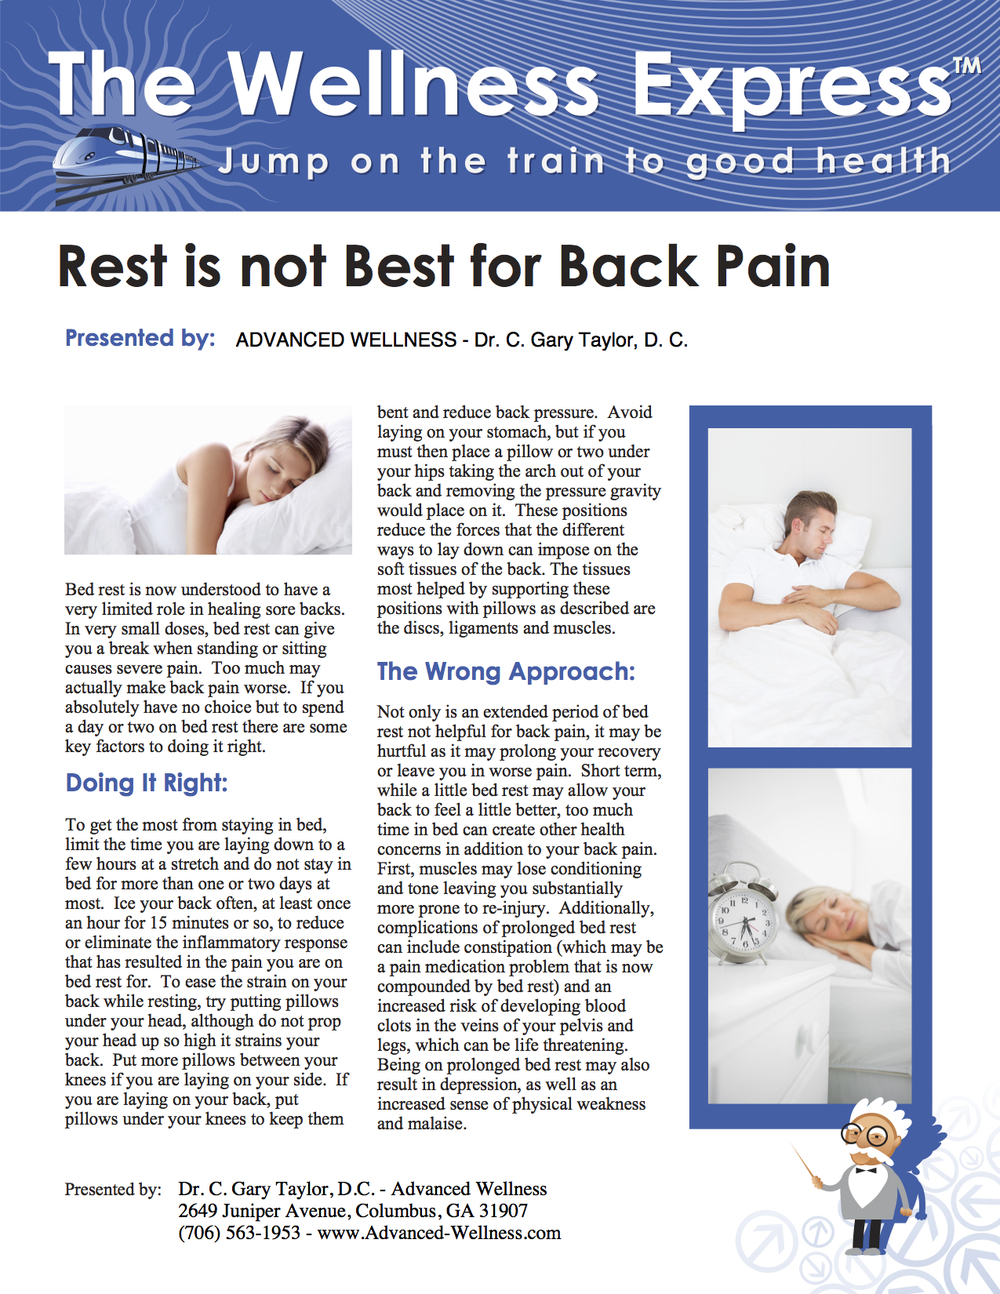 Weekly Newsletter: Rest Is Not Best for Back Pain